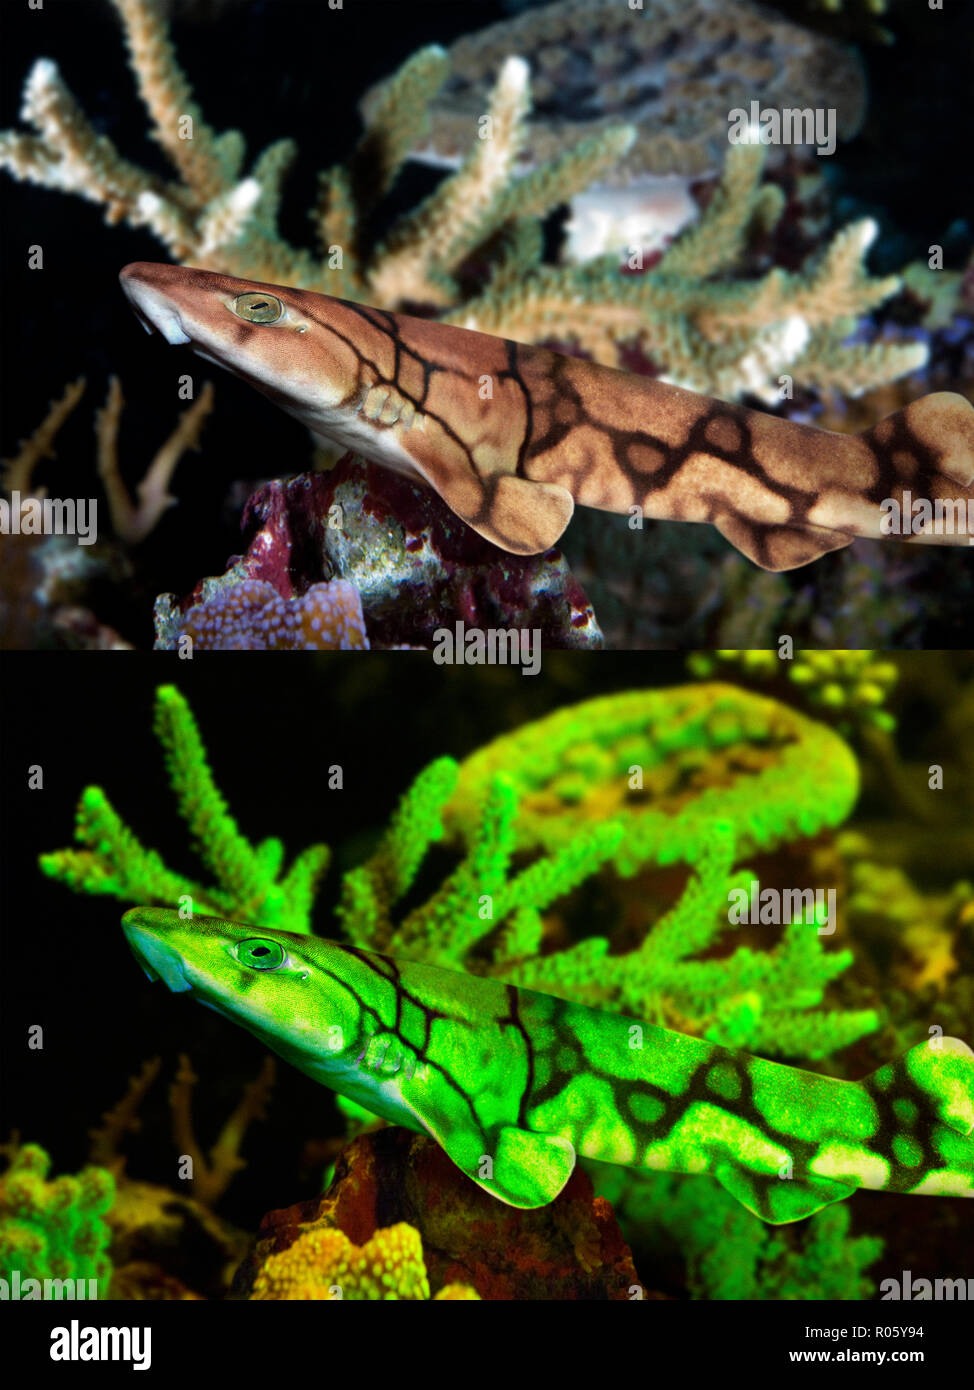 Chain catshark or chain dogfish, Scyliorhinus retifer. Above photographed with daylight bellown showing fluorescent colours when photographed - Stock Image